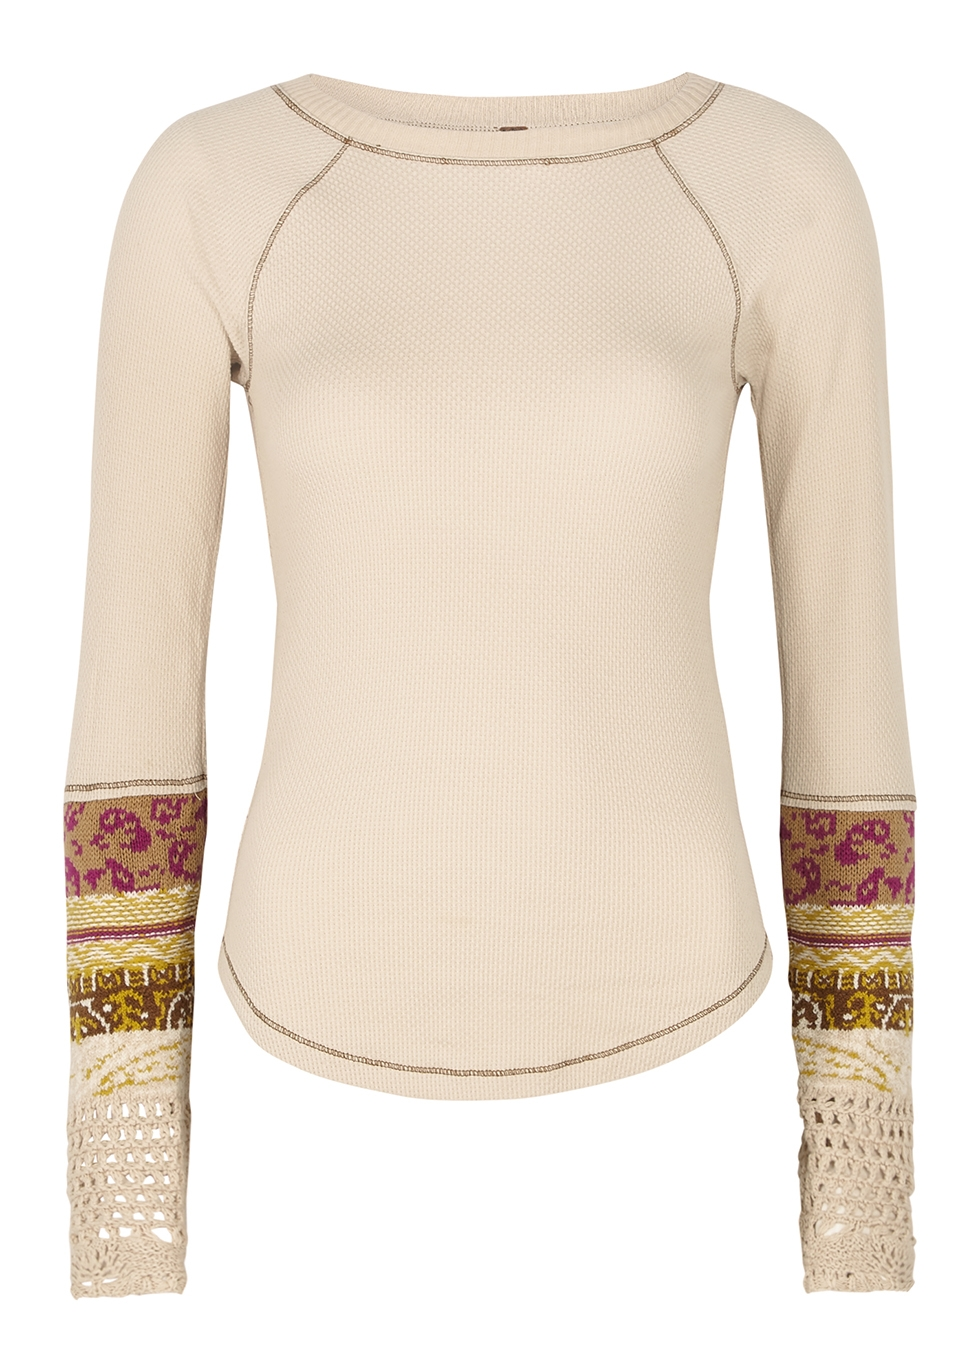 In The Mix cream waffle-knit cotton-blend top